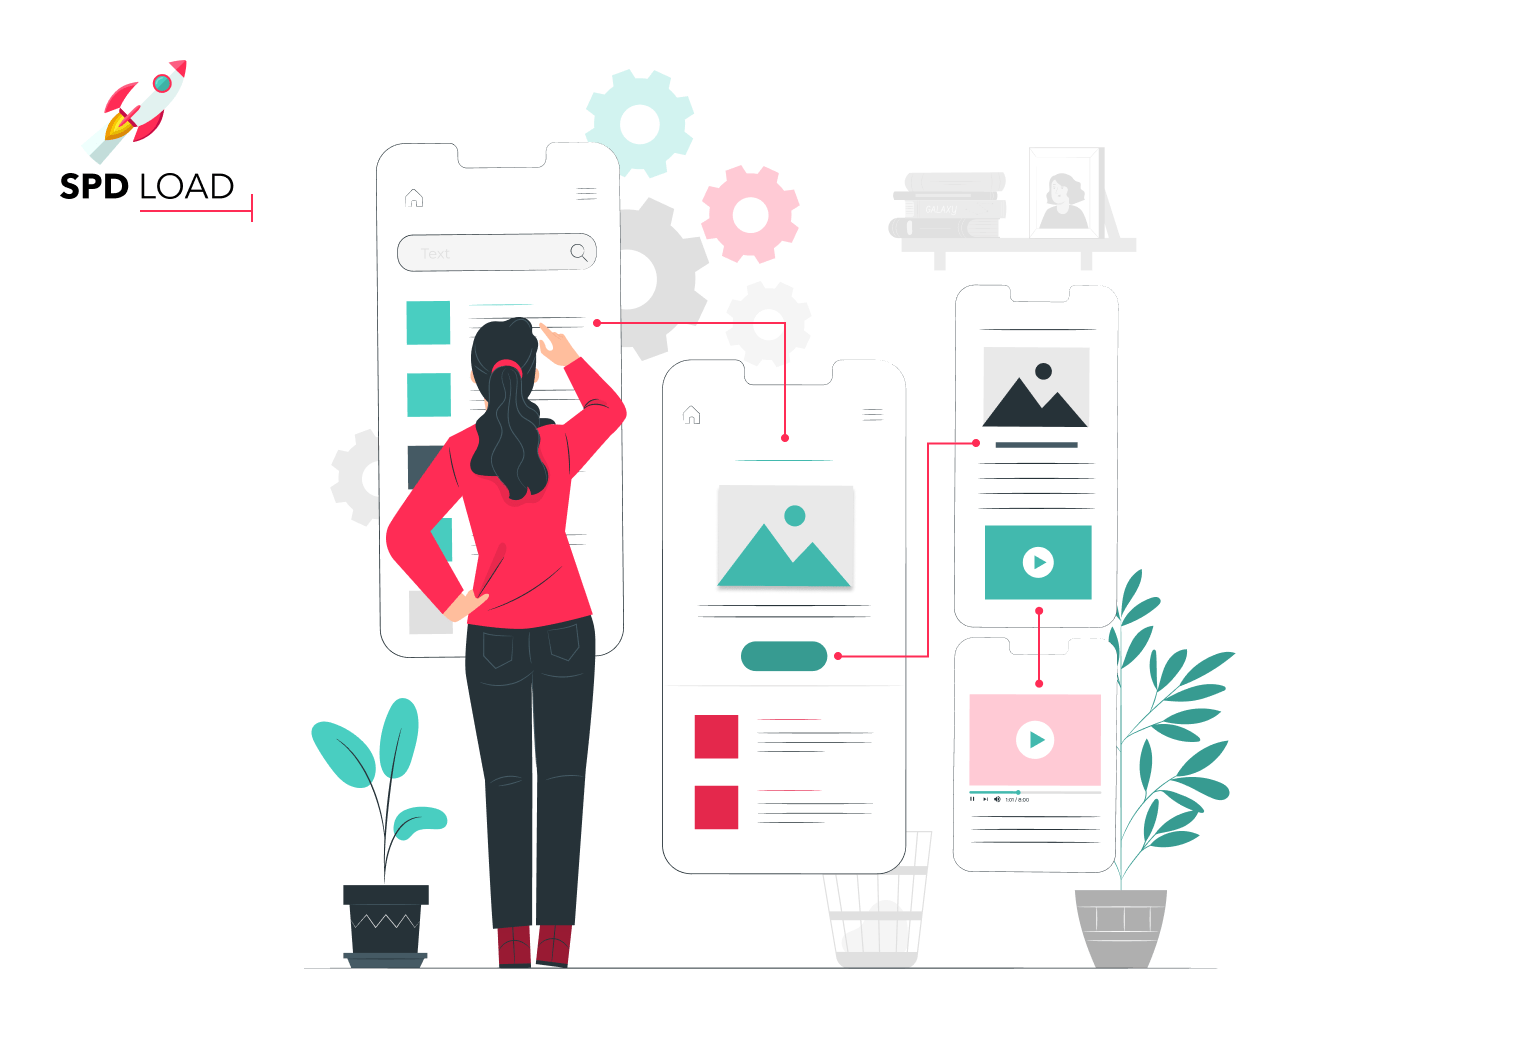 SpdLoad prepared in-depth guide about how to redesign an app or a website ux